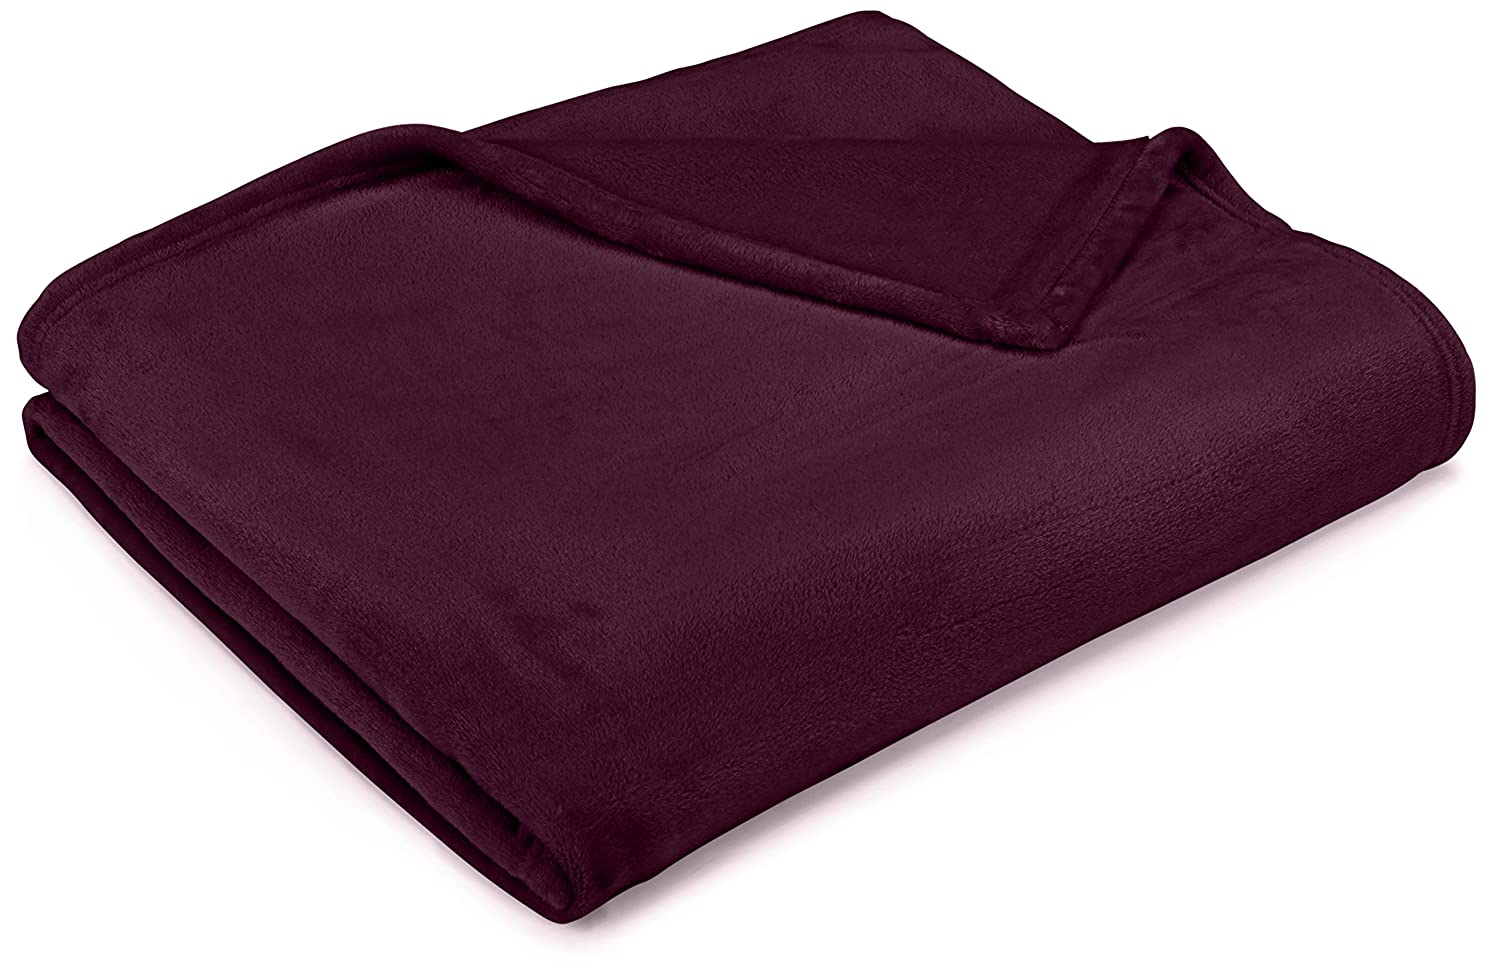 "Pinzon Velvet Plush Throw Blanket, 50"" x 60"", Aubergine"